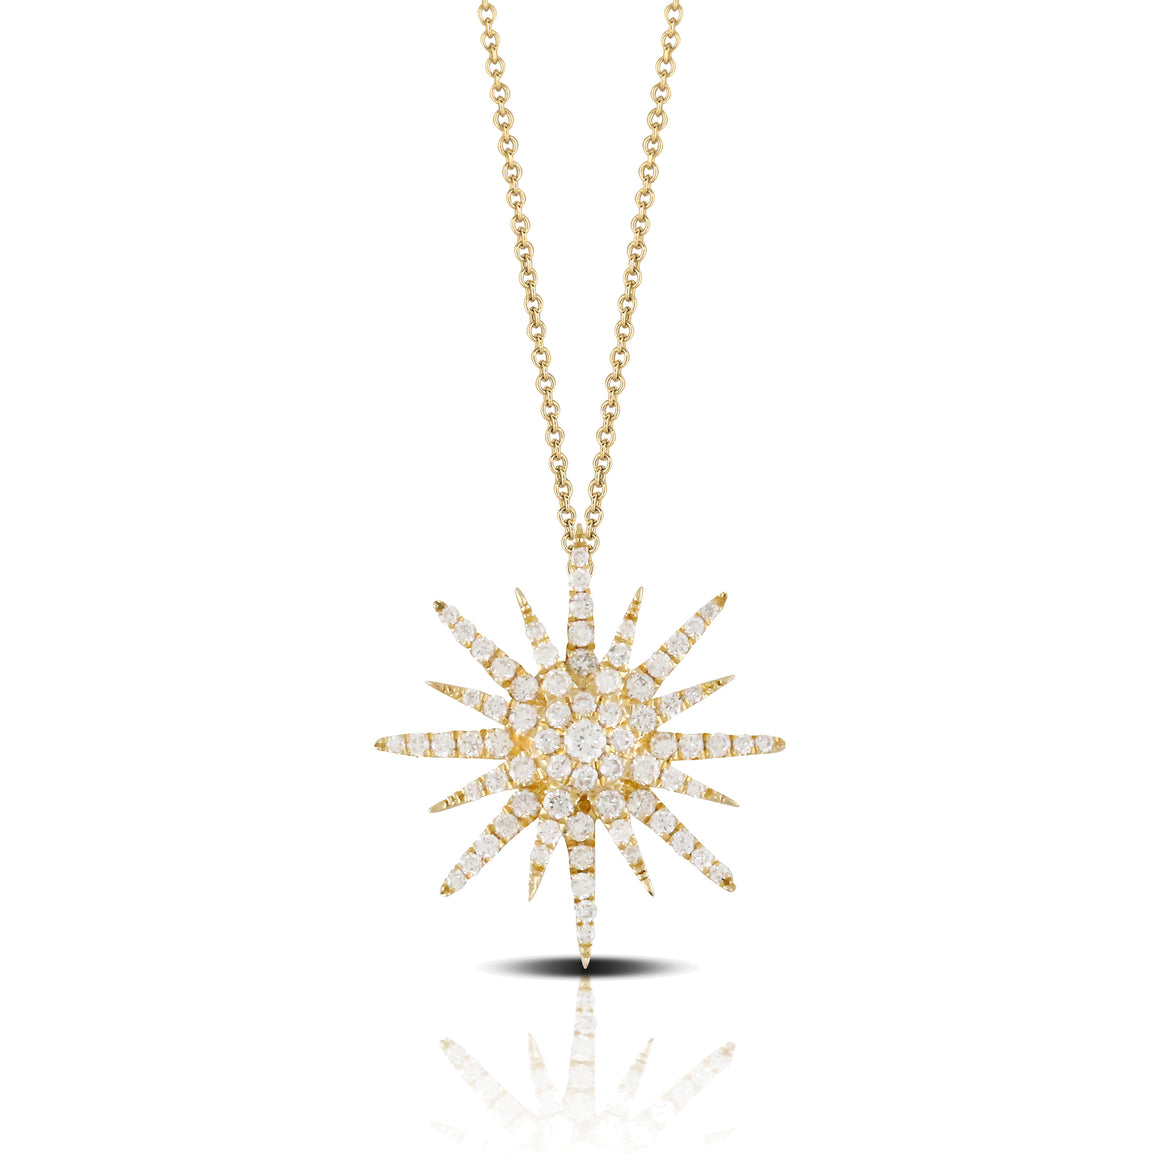 Diamond Sunburst Necklace by Doves - Talisman Collection Fine Jewelers